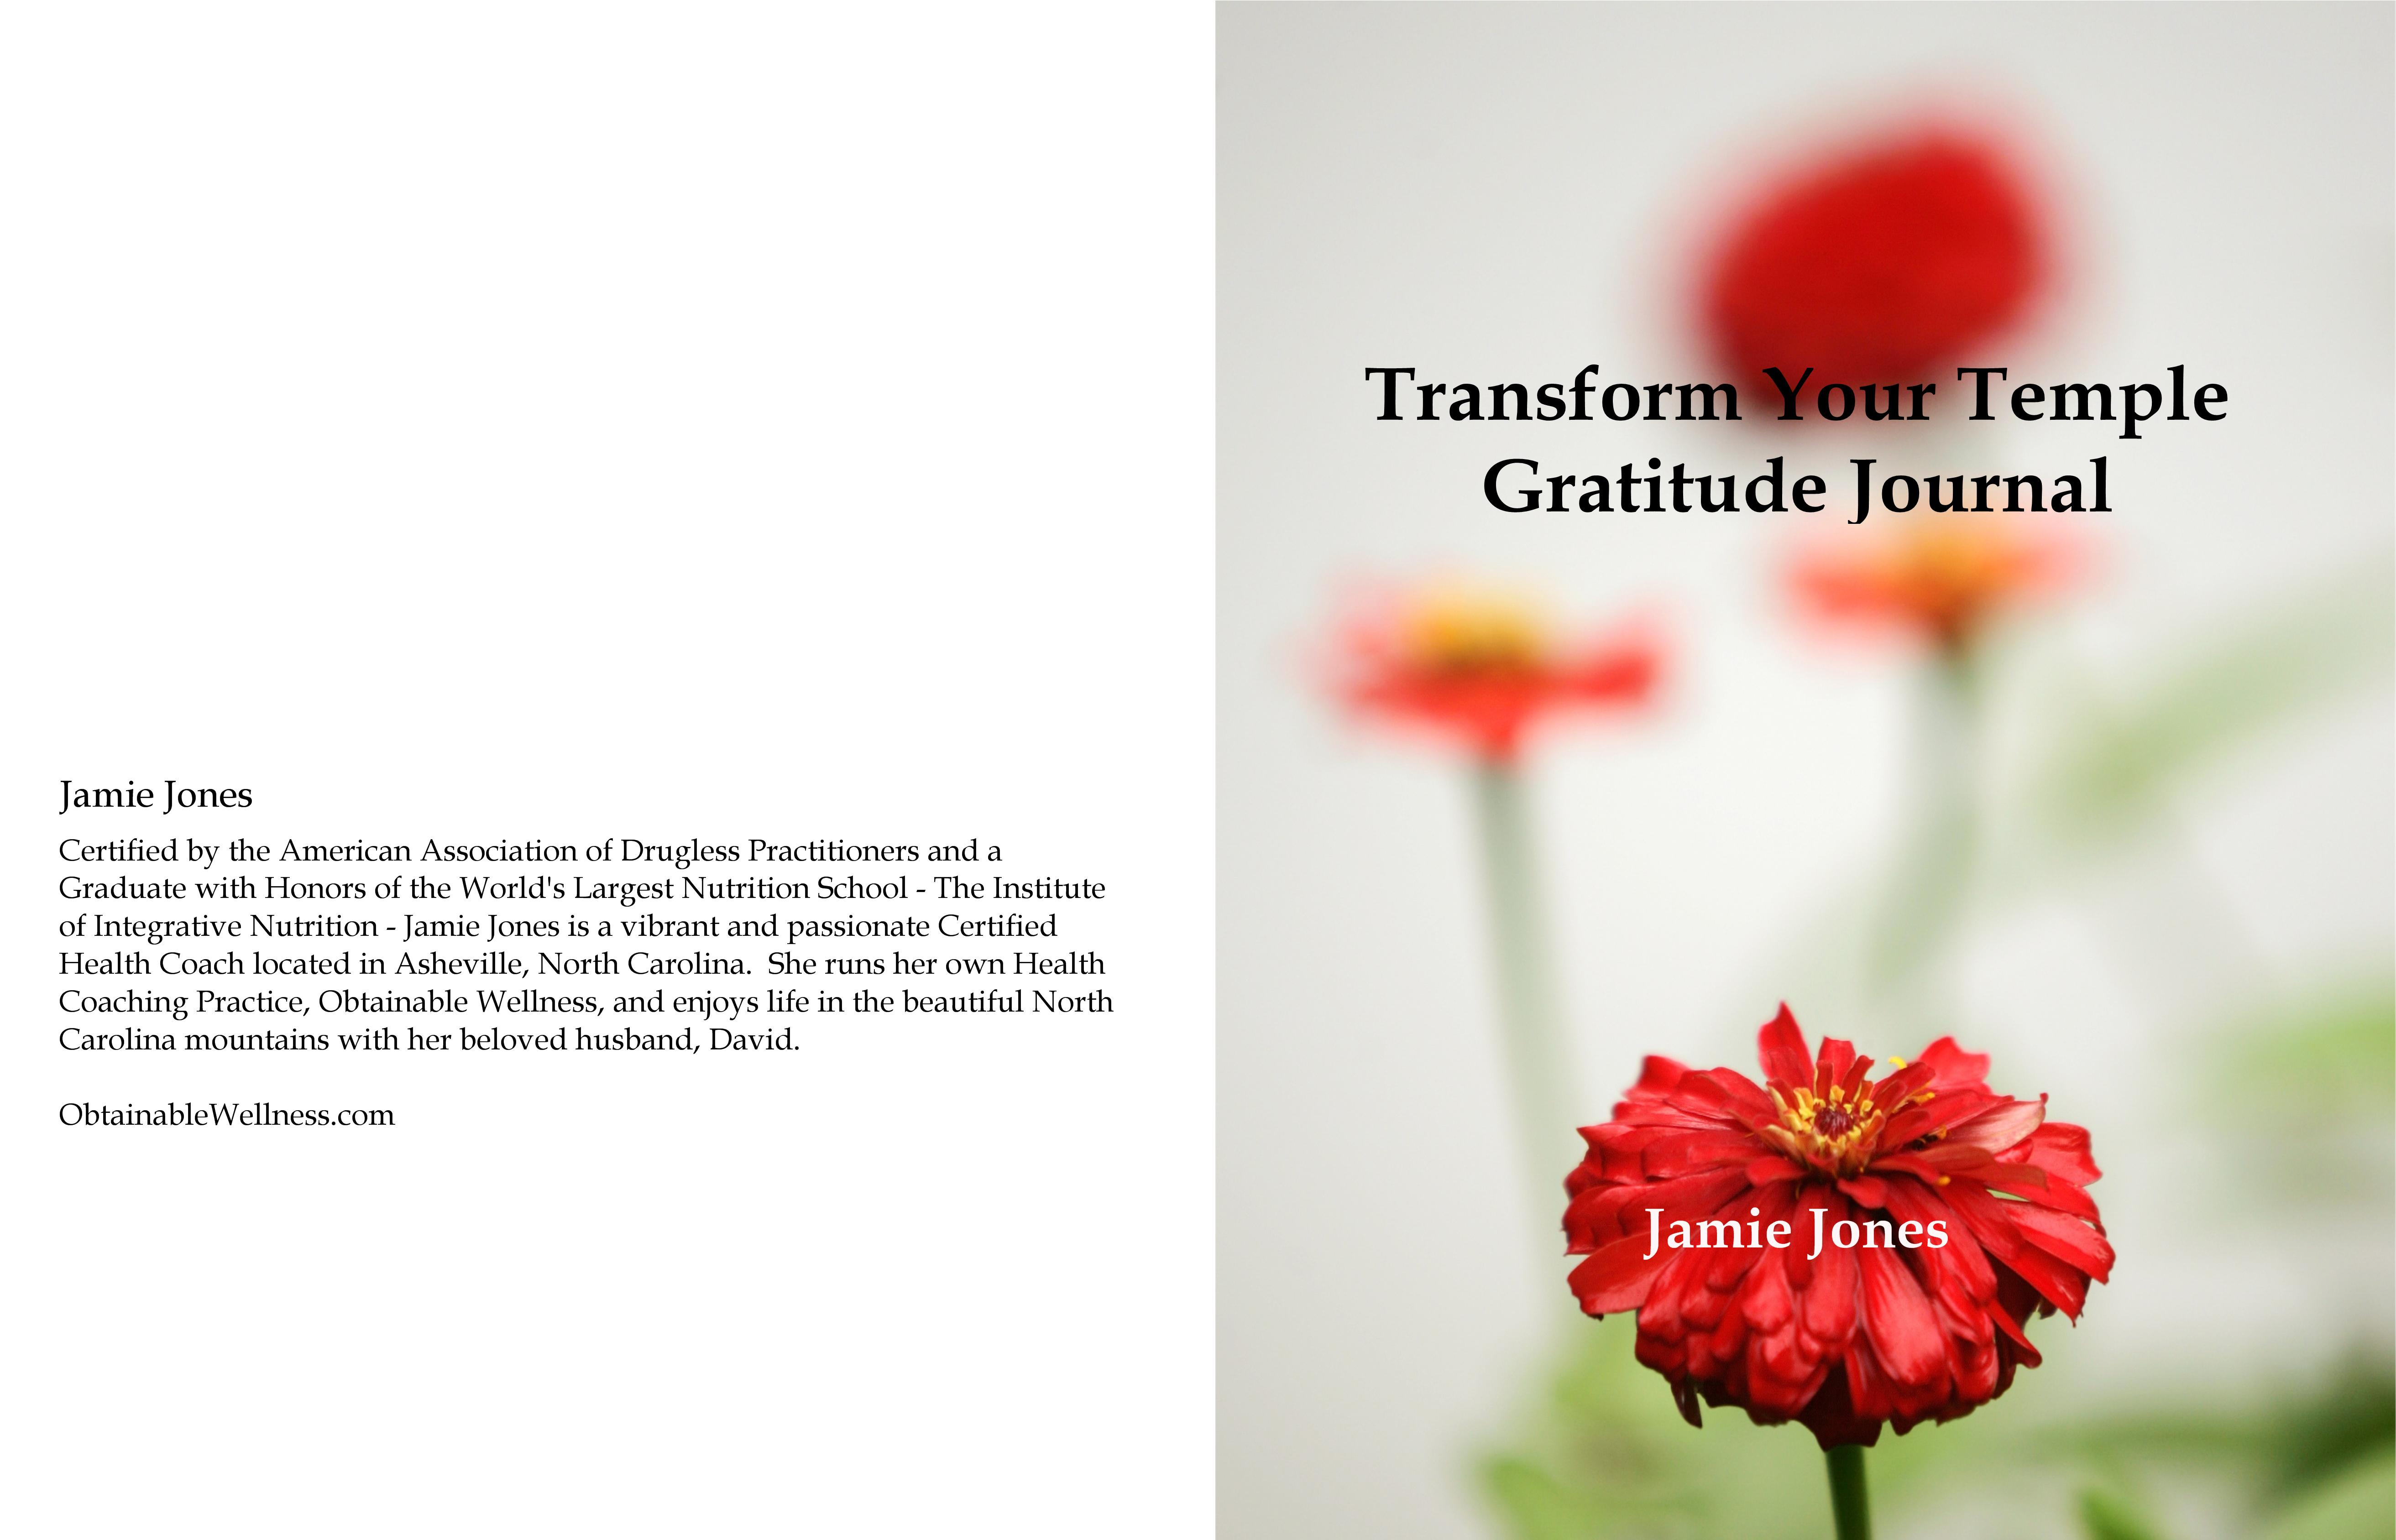 Transform Your Temple Gratitude Journal cover image